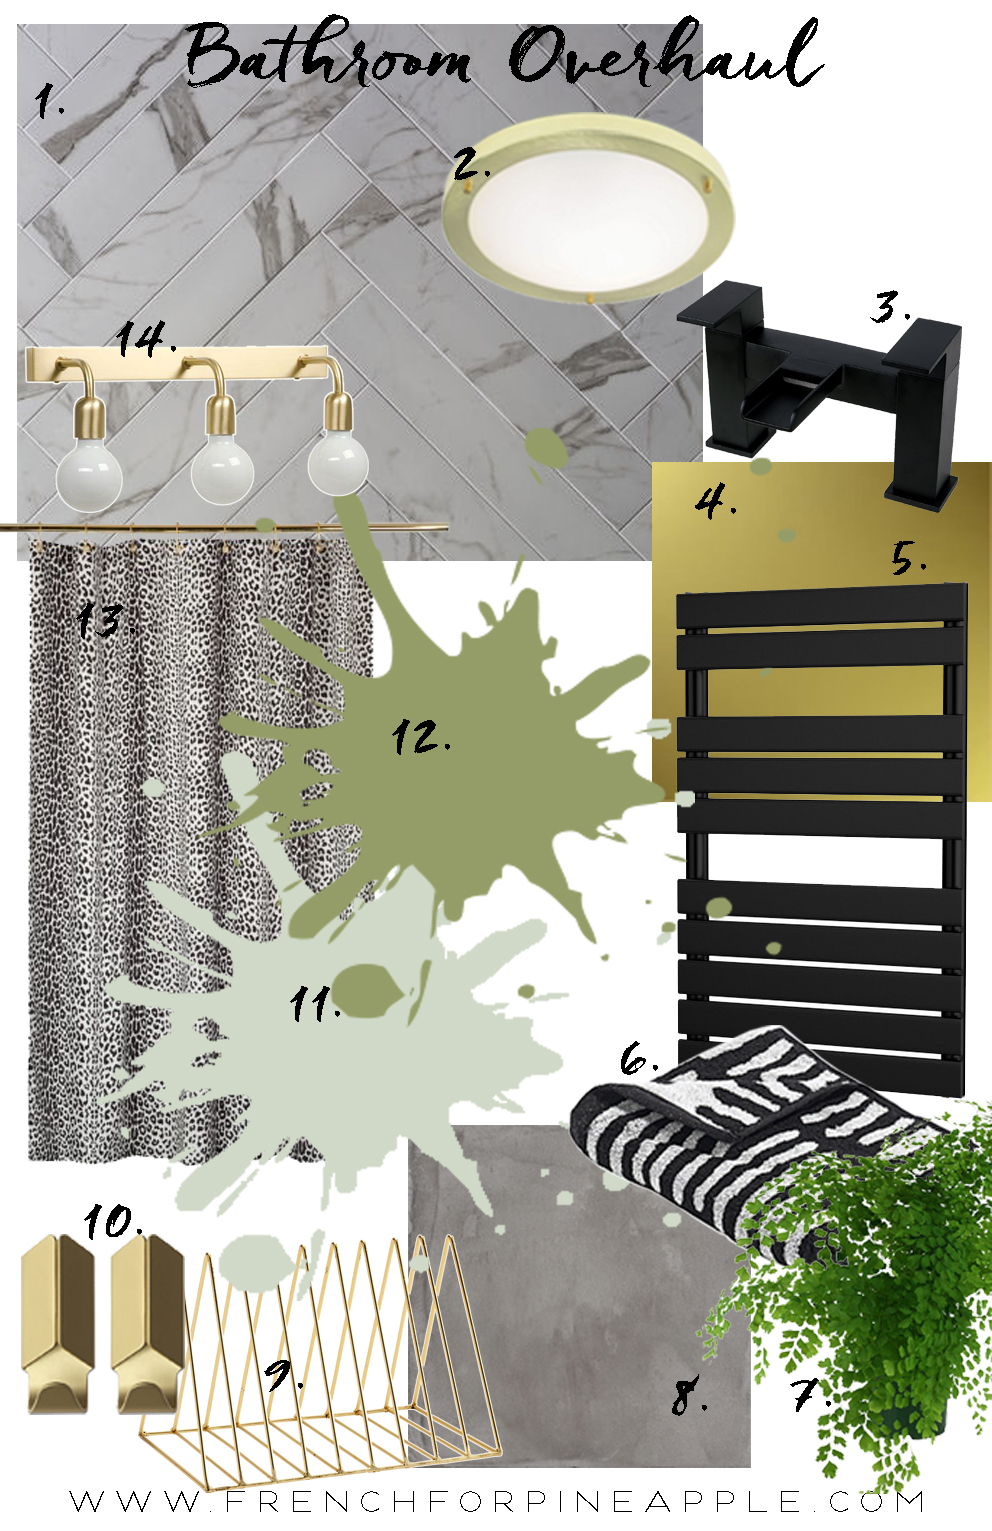 Bathroom Overhaul Moodboard - French For Pineapple Blog